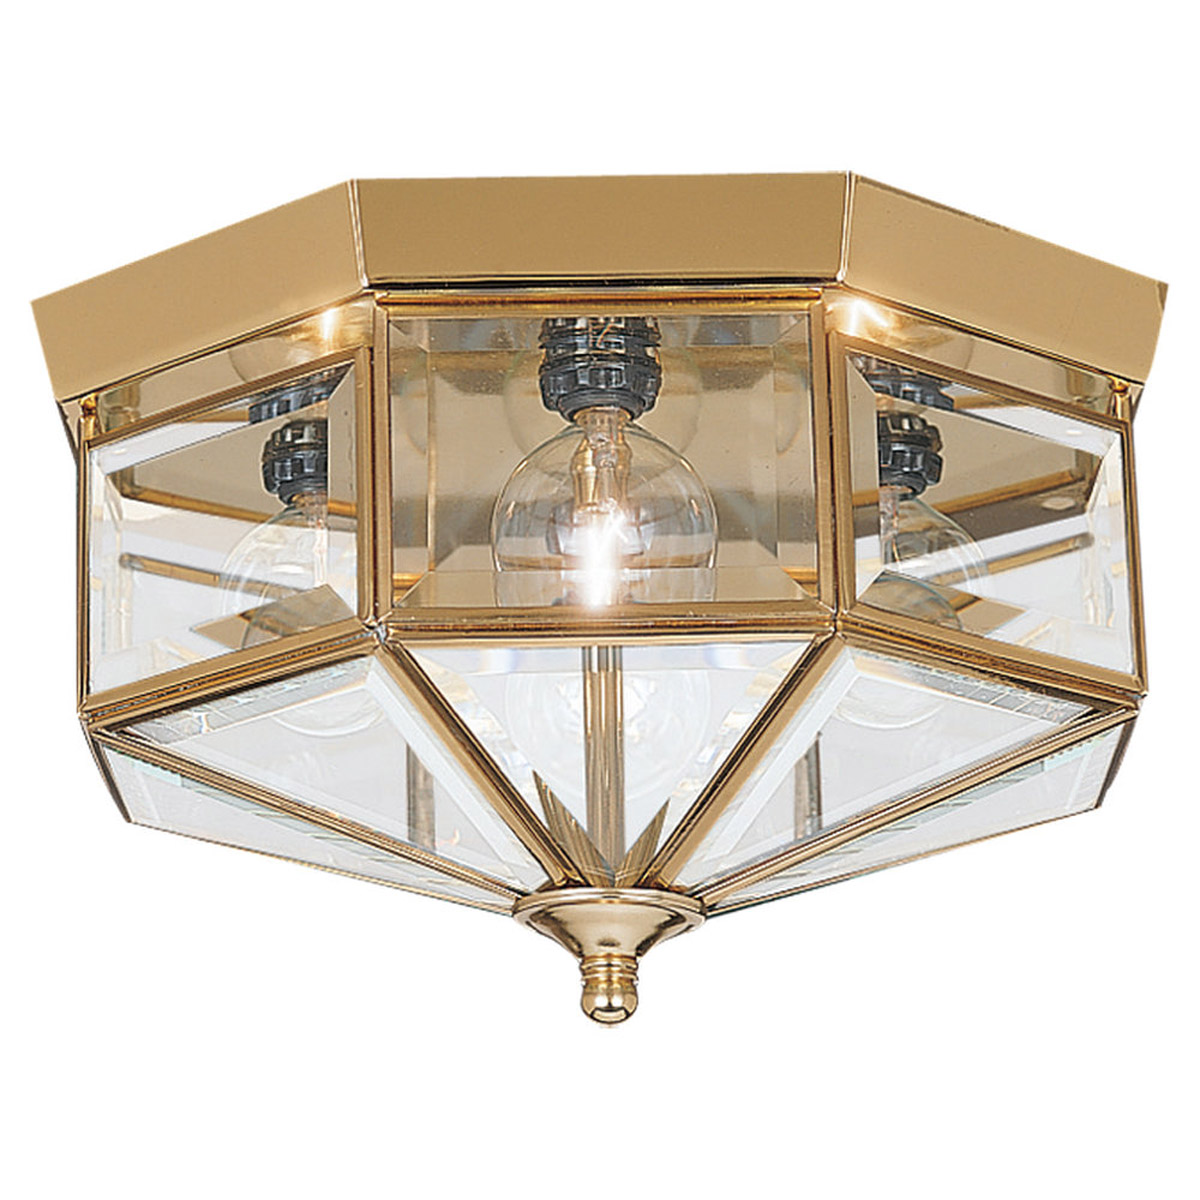 Sea Gull Lighting Grandover 4 Light Flush Mount in Polished Brass 7662-02